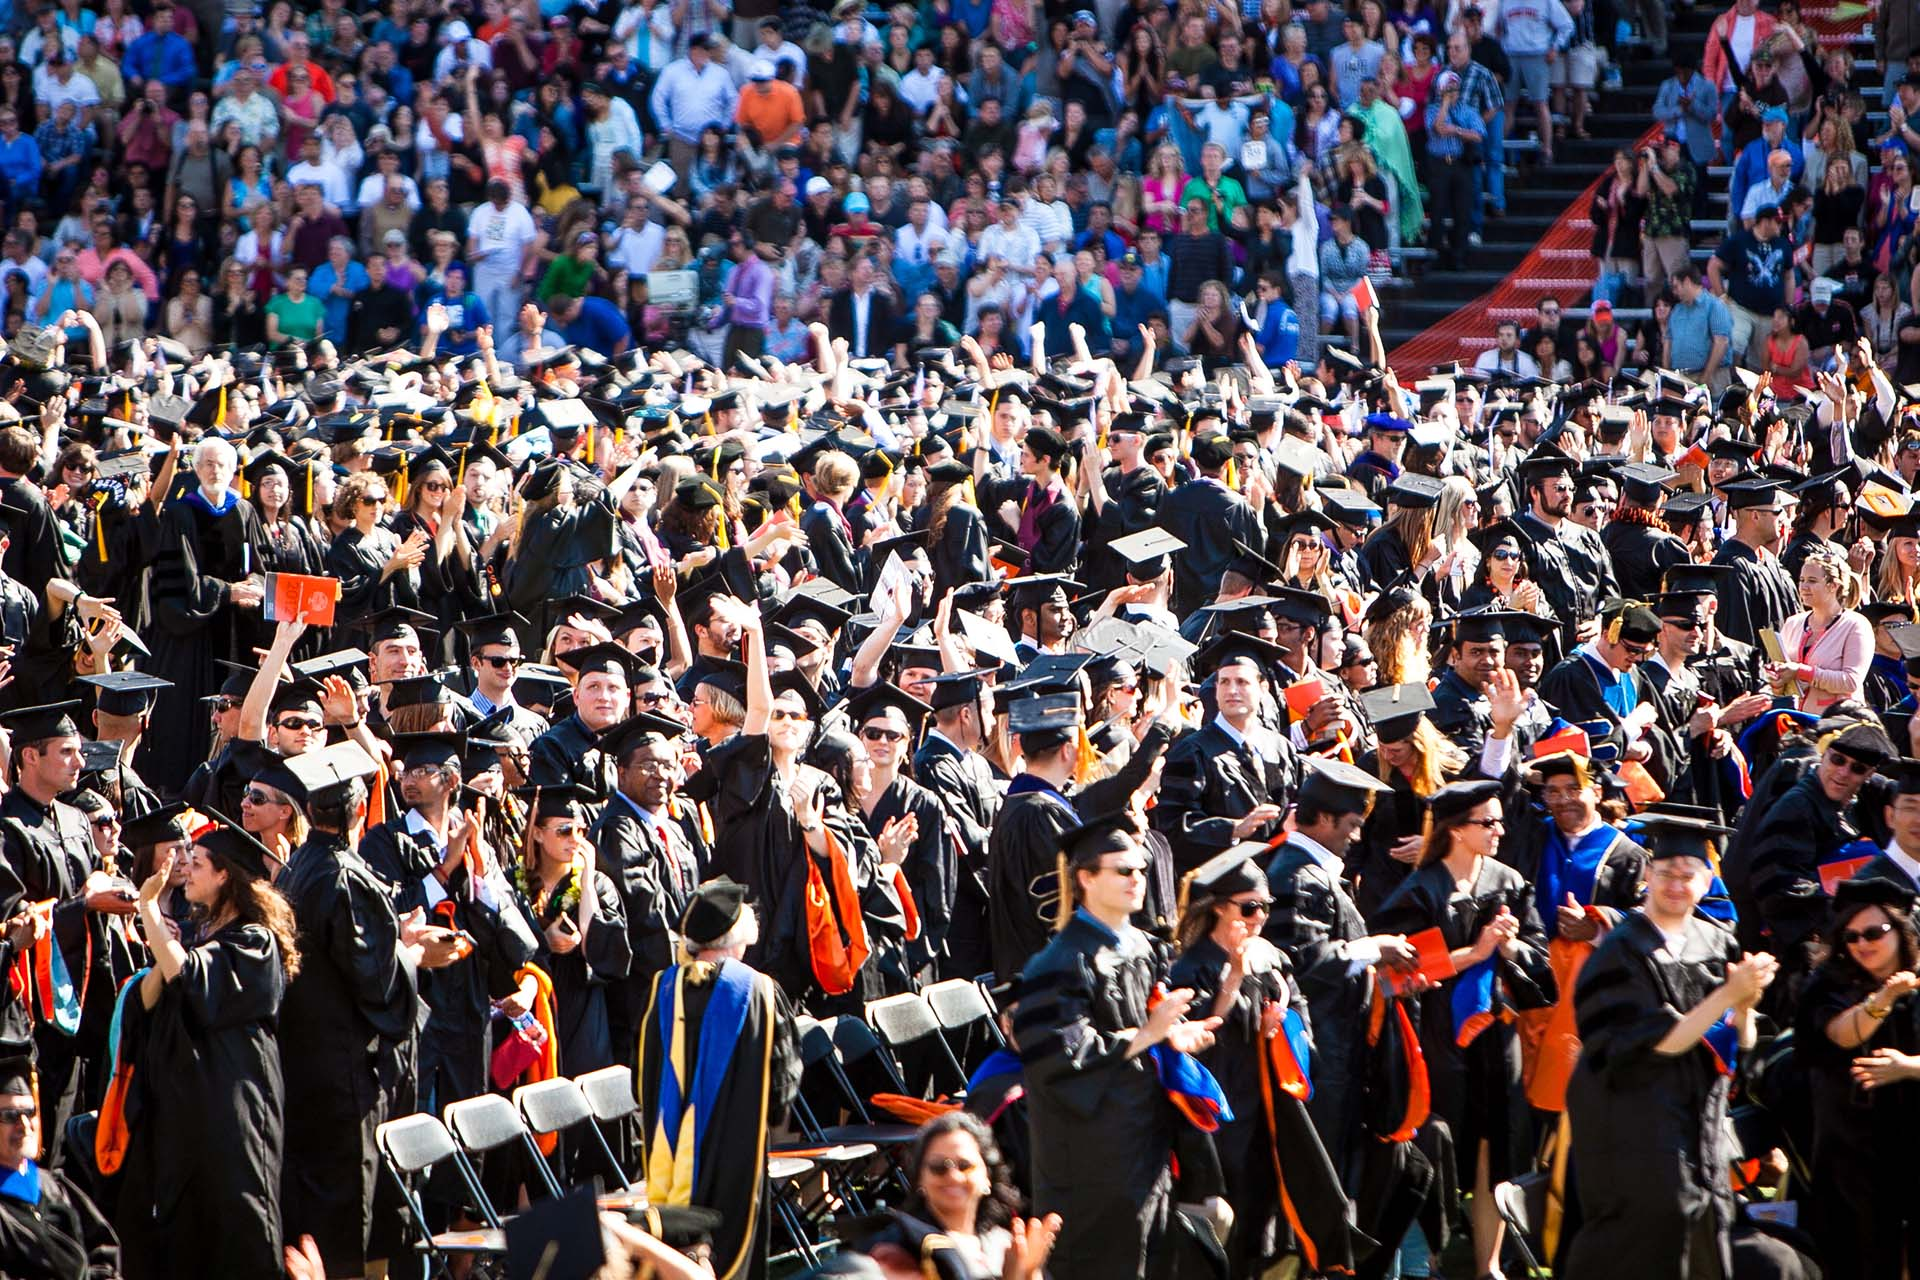 Oregon State University 2012 commencement